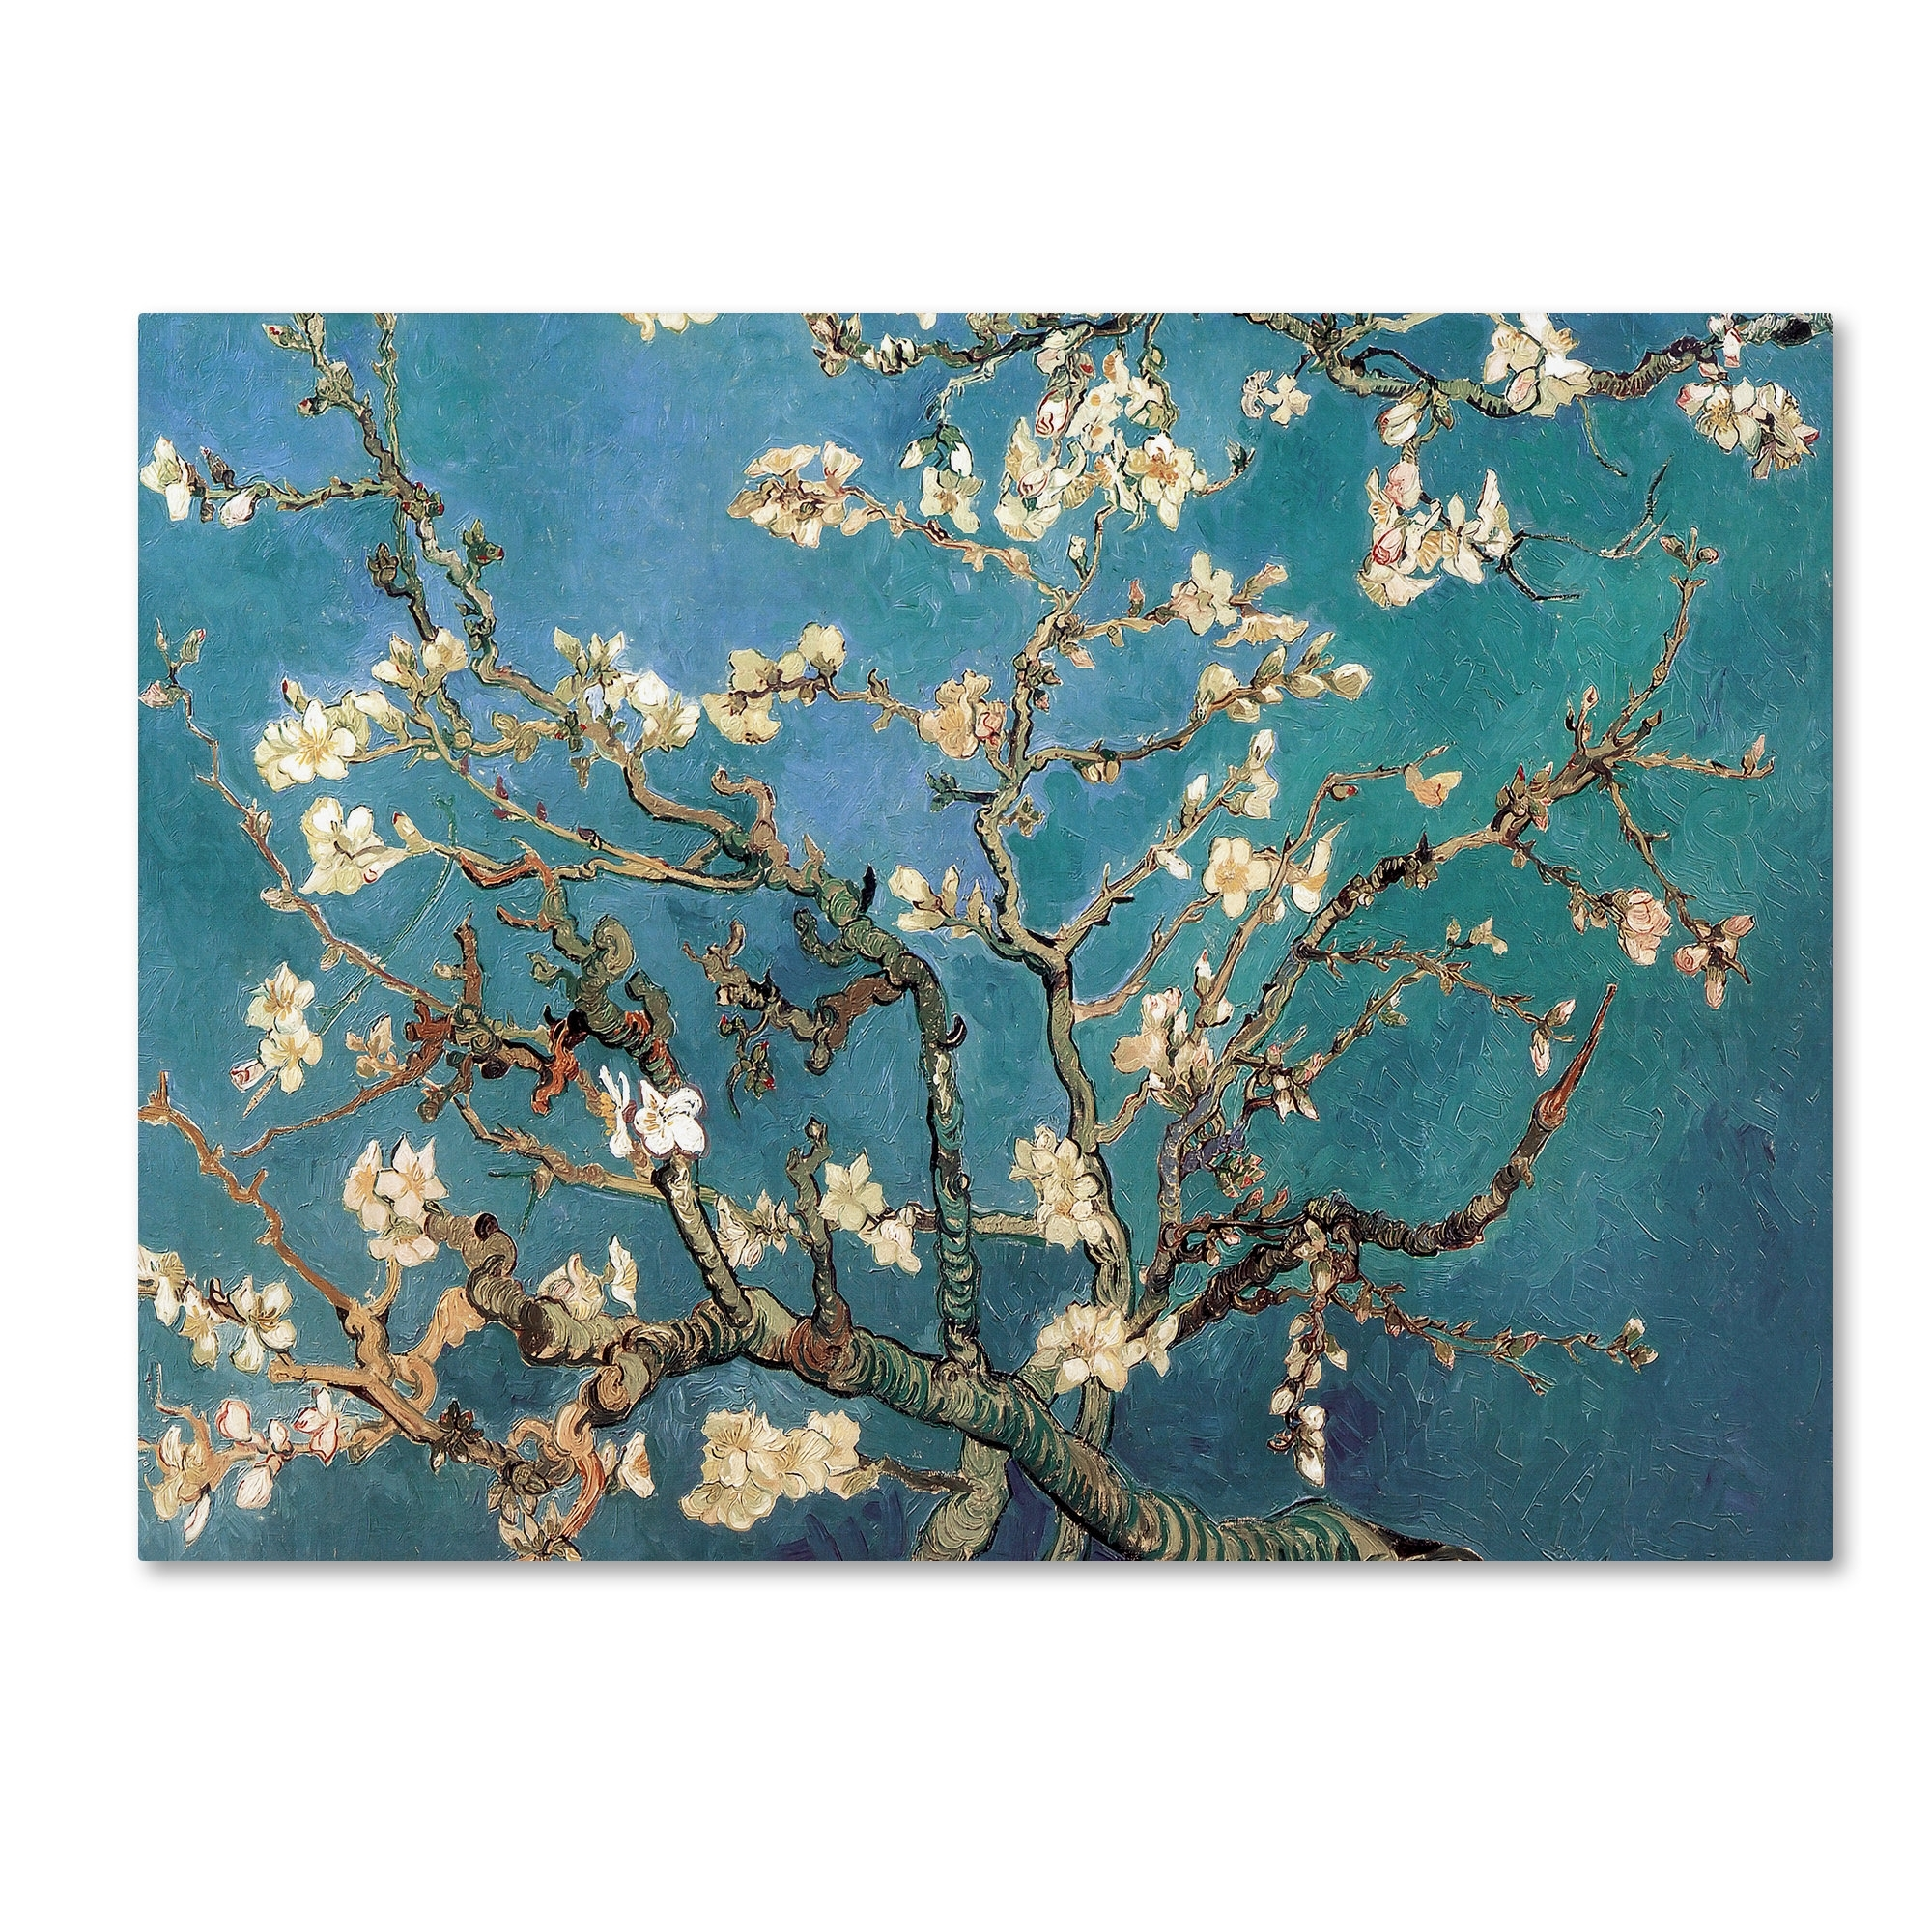 Trademark Art Almond Blossoms'vincent Van Gogh Framed On With Most Popular Almond Blossoms Vincent Van Gogh Wall Art (View 12 of 20)